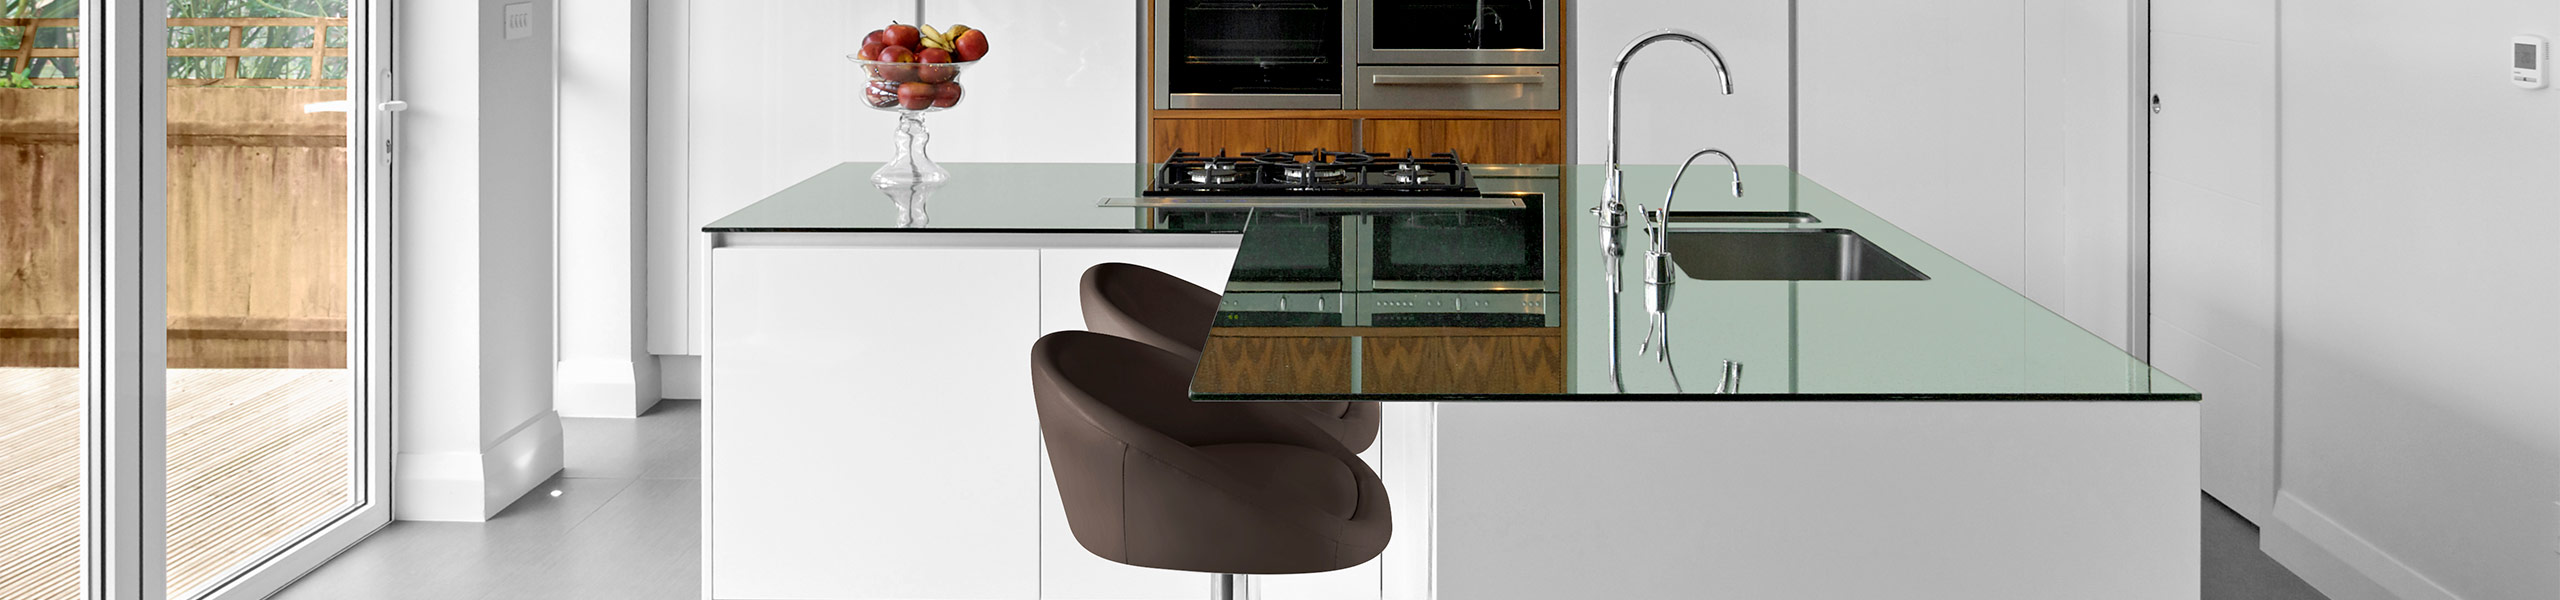 Zenith Real Leather Stool Brown Video Banner